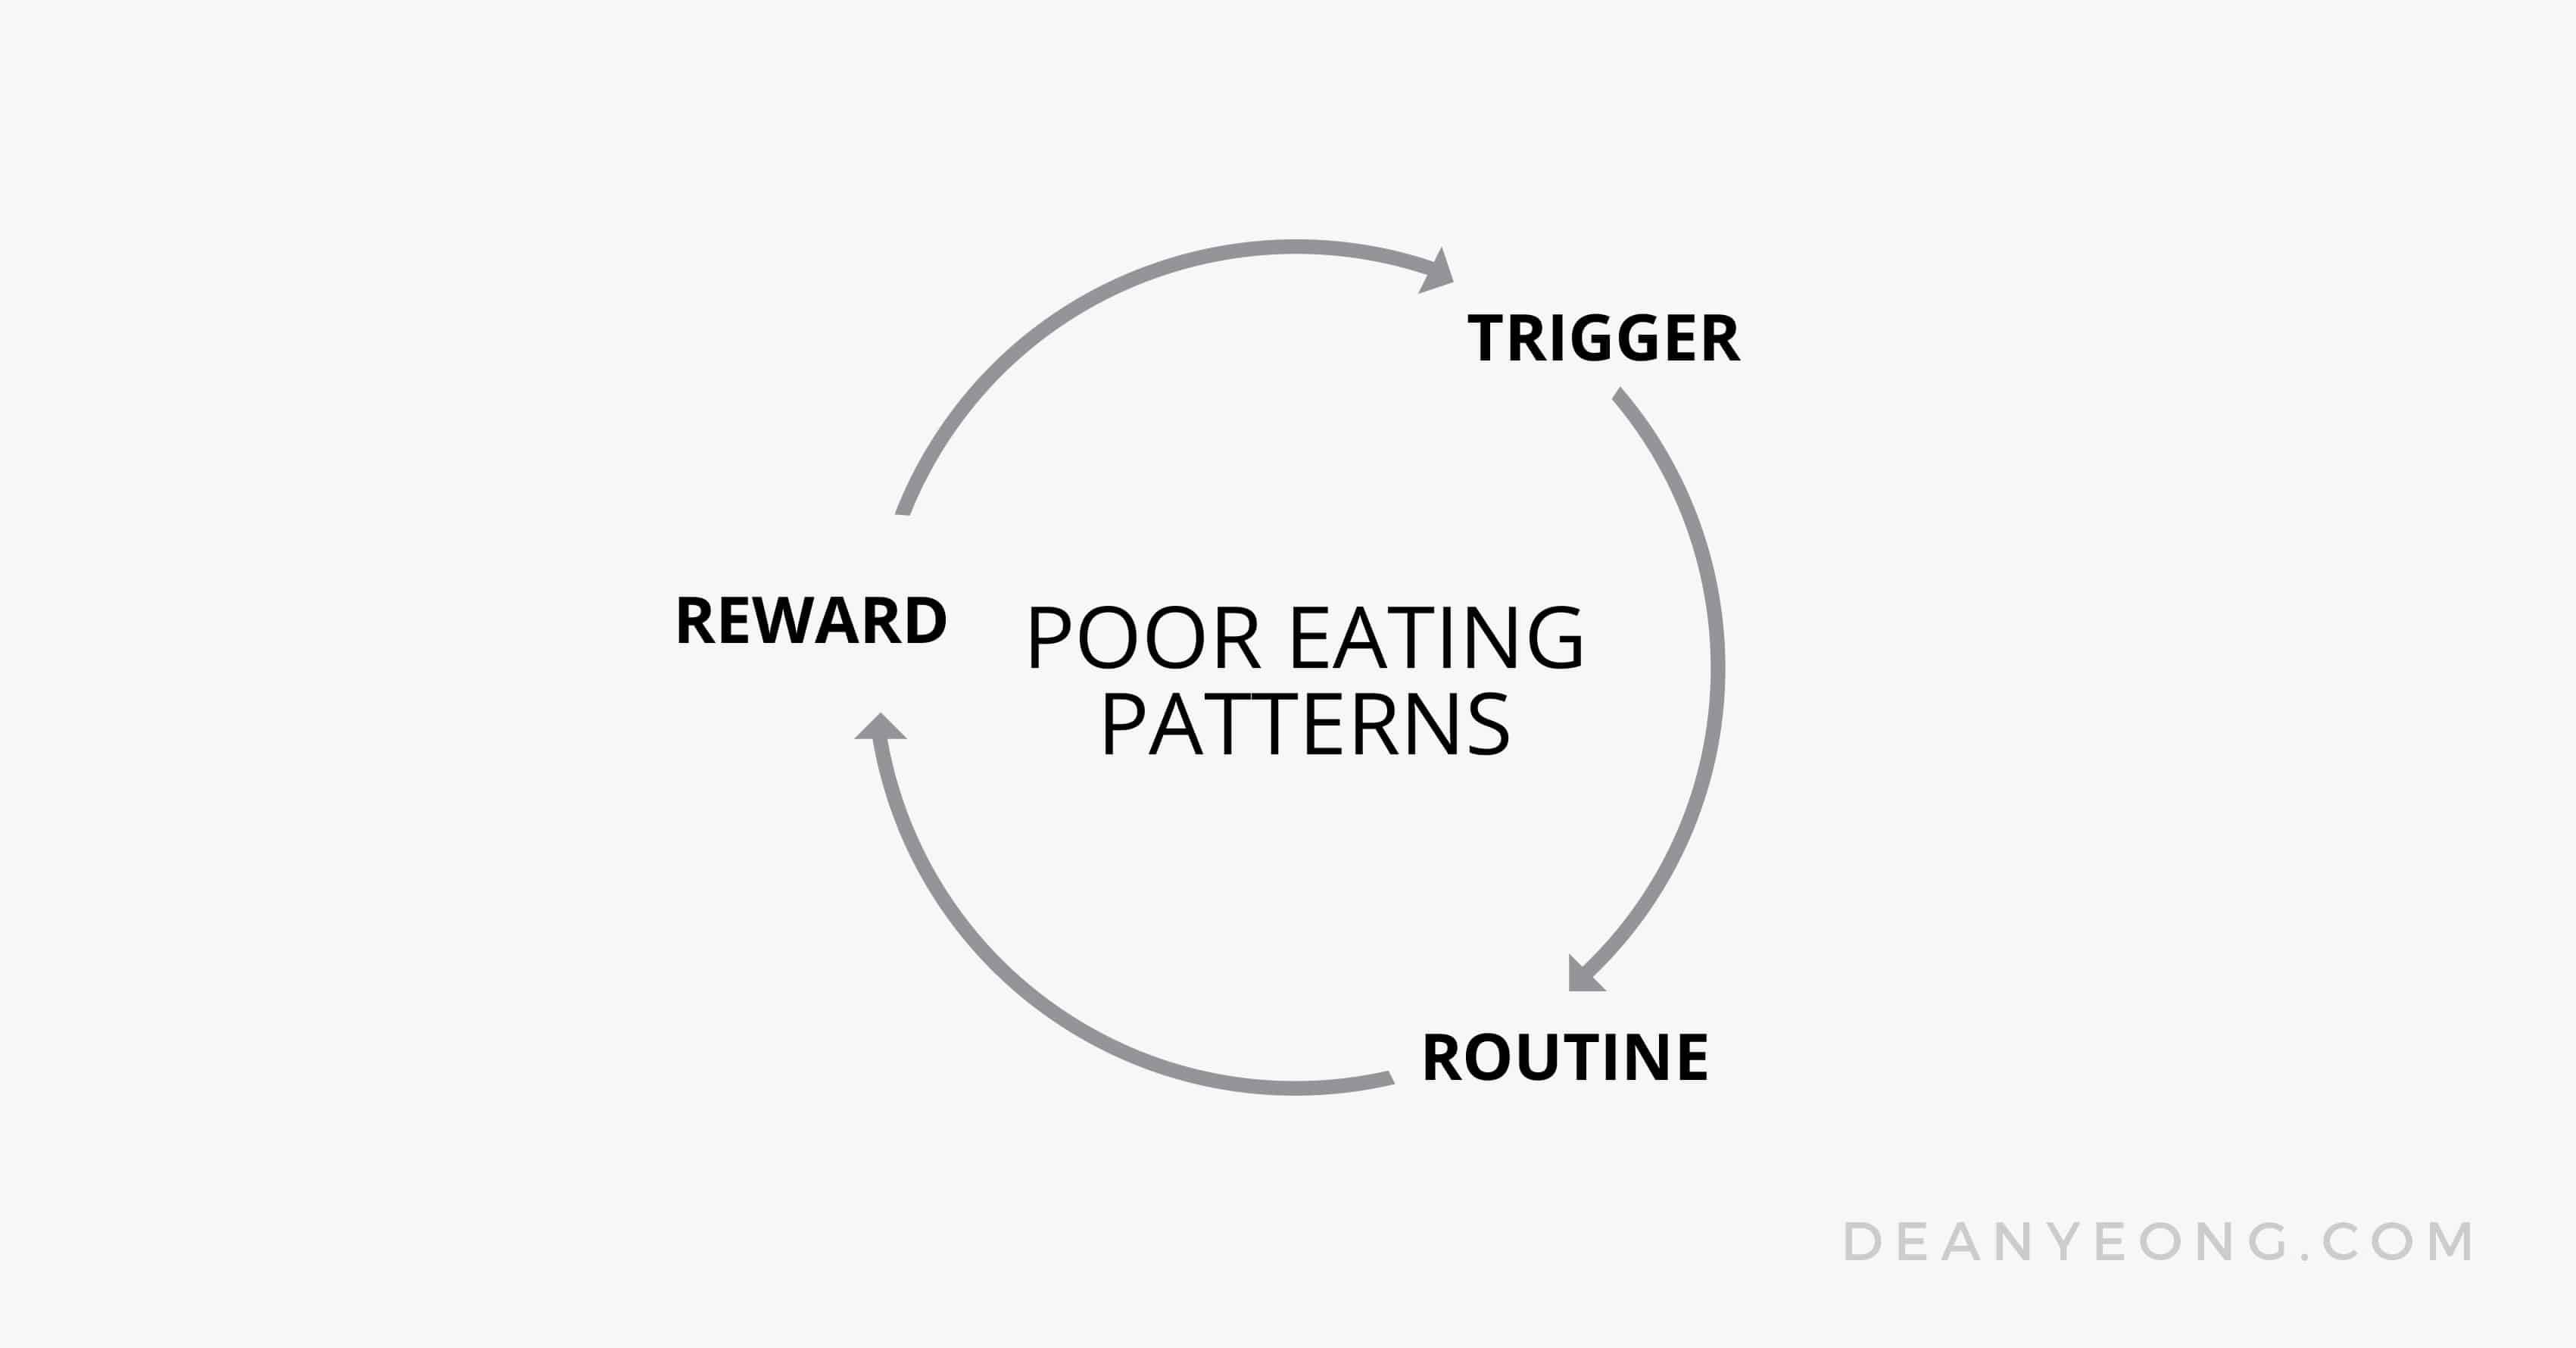 Habit formation of poor eating habits